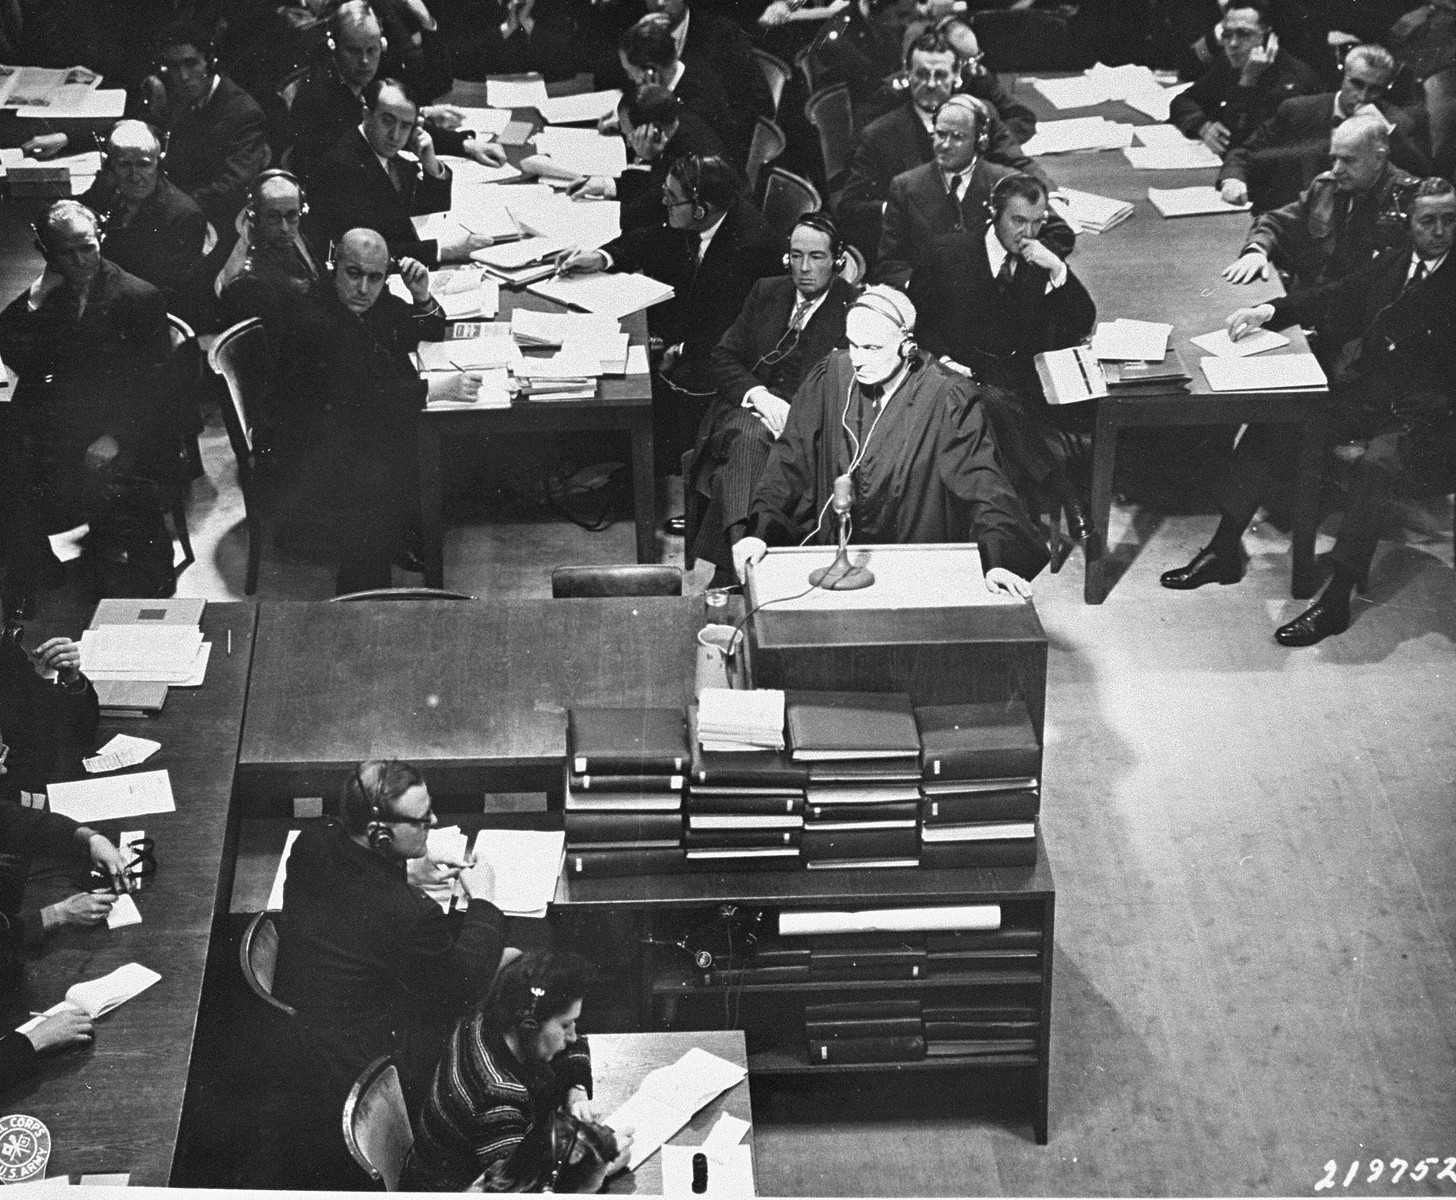 Defense attorney Dr. Otto Stahmer, the counsel for Hermann Goering, asks for a temporary adjournment so the defendants can speak with their counsellors at the International Military Tribunal trial of war criminals at Nuremberg.  As a result, court was adjourned for fifteen minutes.